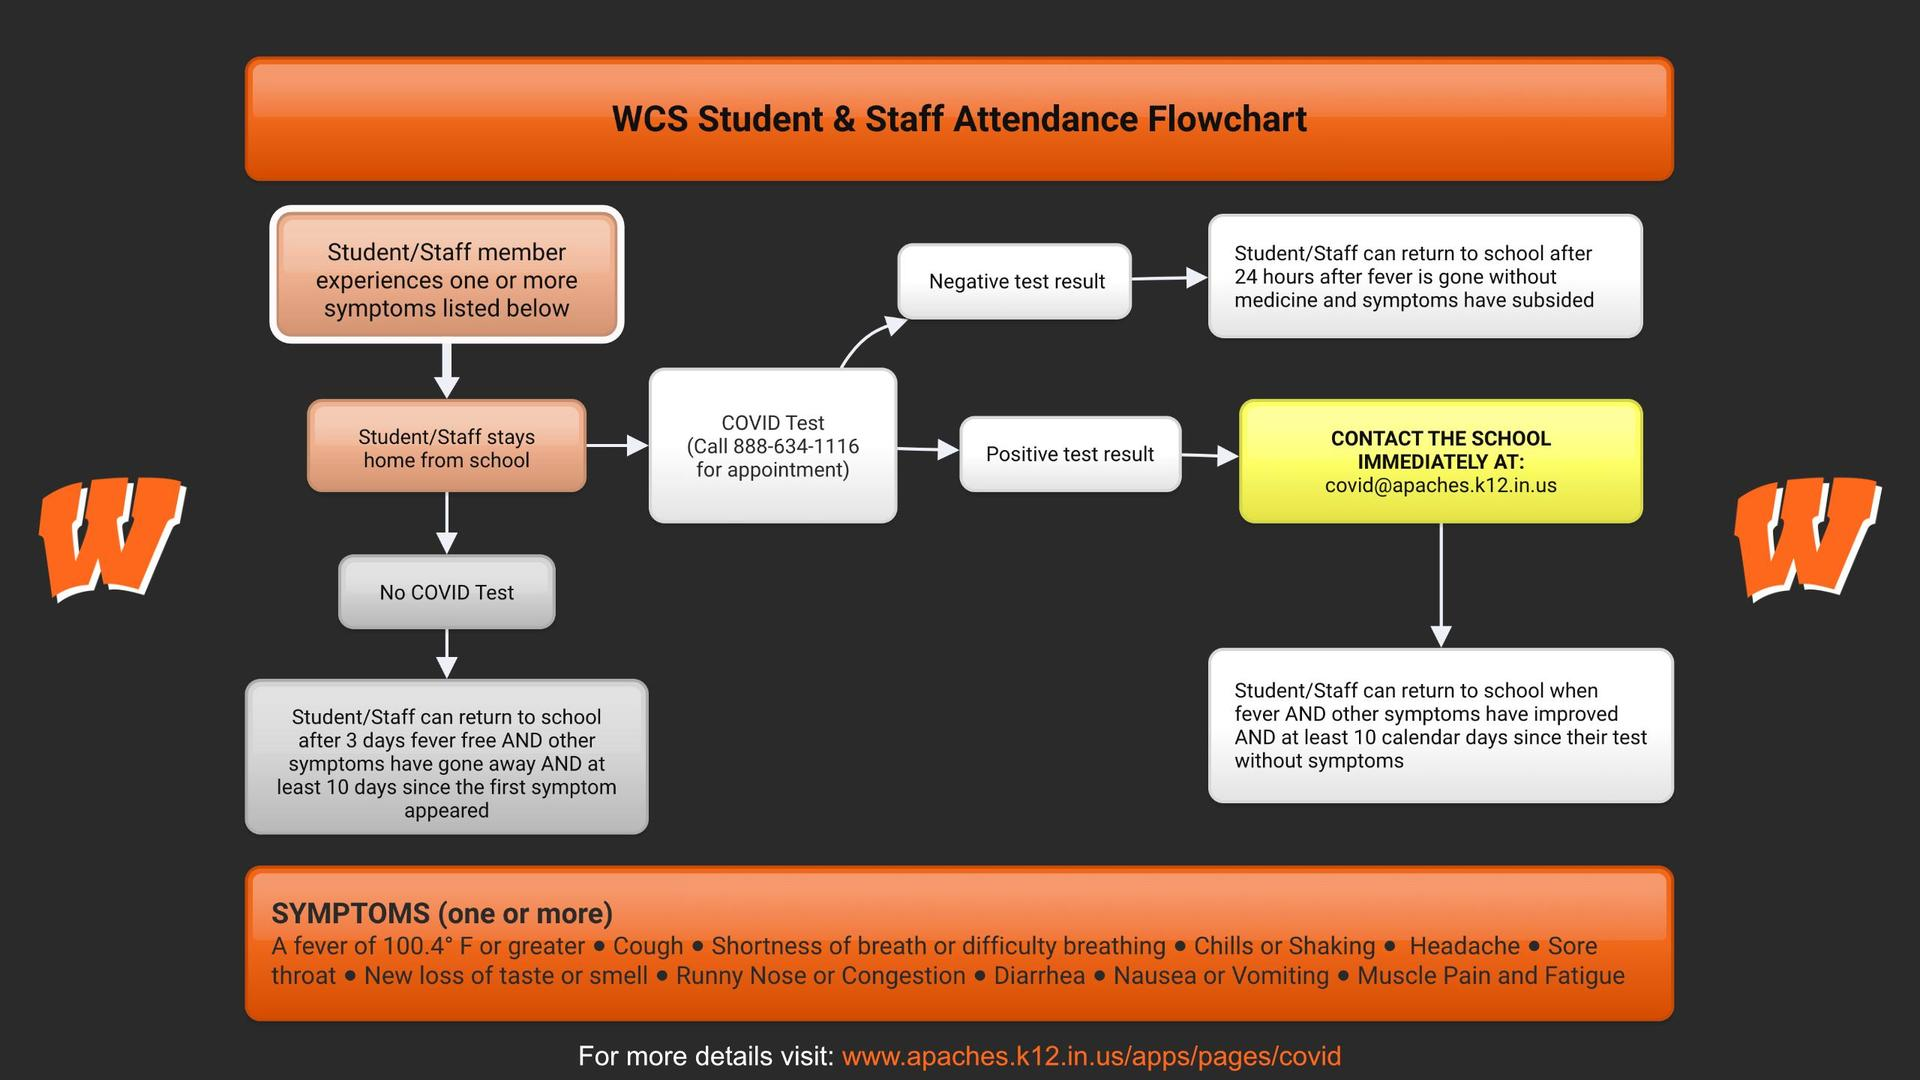 Staff and student attendance flowchart